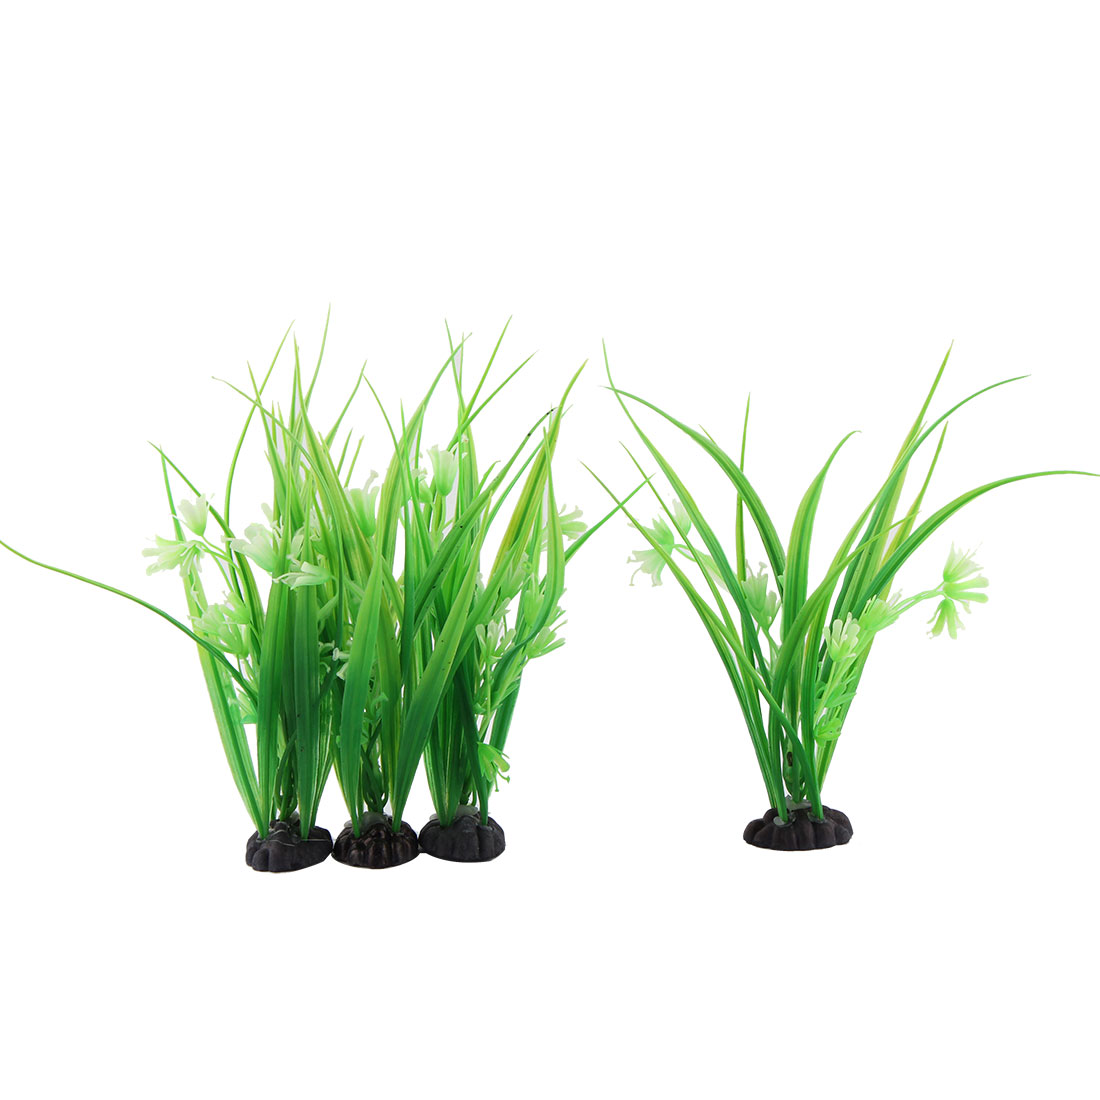 Artificial Underwater Grass Plant Aquarium Fish Tank Decoration Green White 4pcs